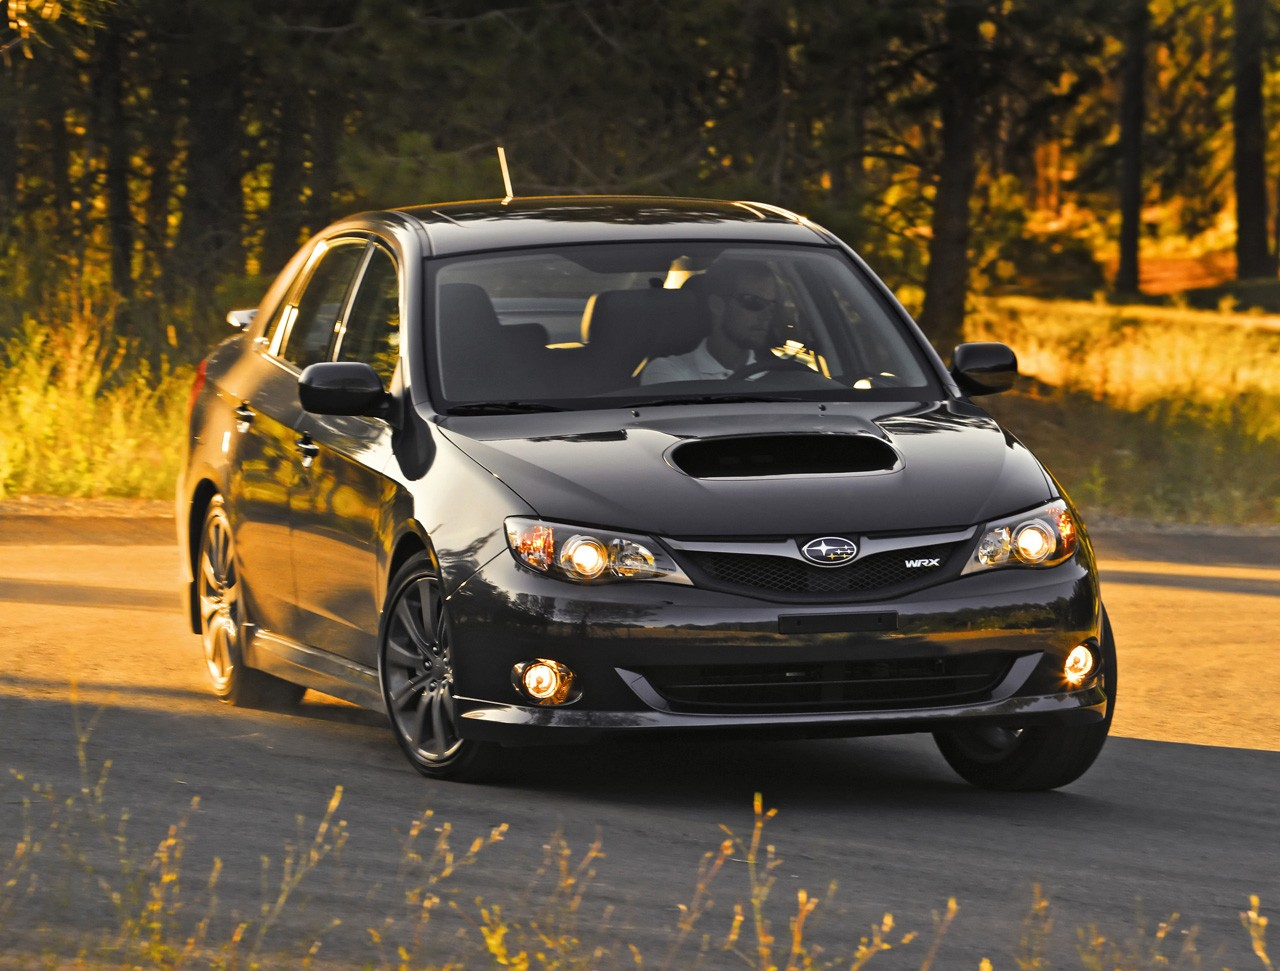 New 2009 Subaru Impreza WRX and WRX STI with 265 Hp engine  Its